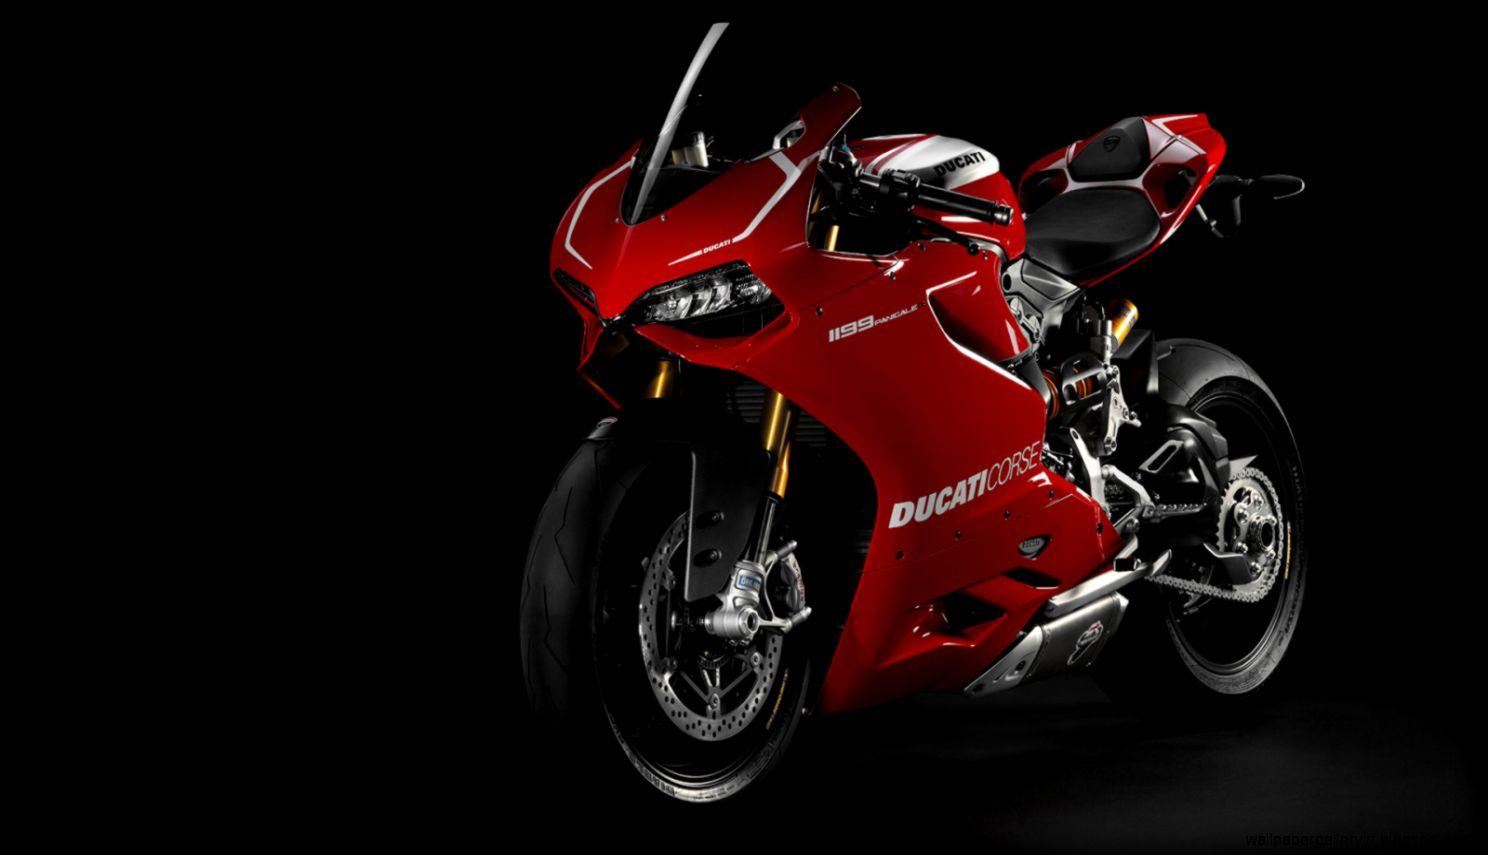 Ducati Superbike 1199 Panigale Hd  Wallpaper Gallery